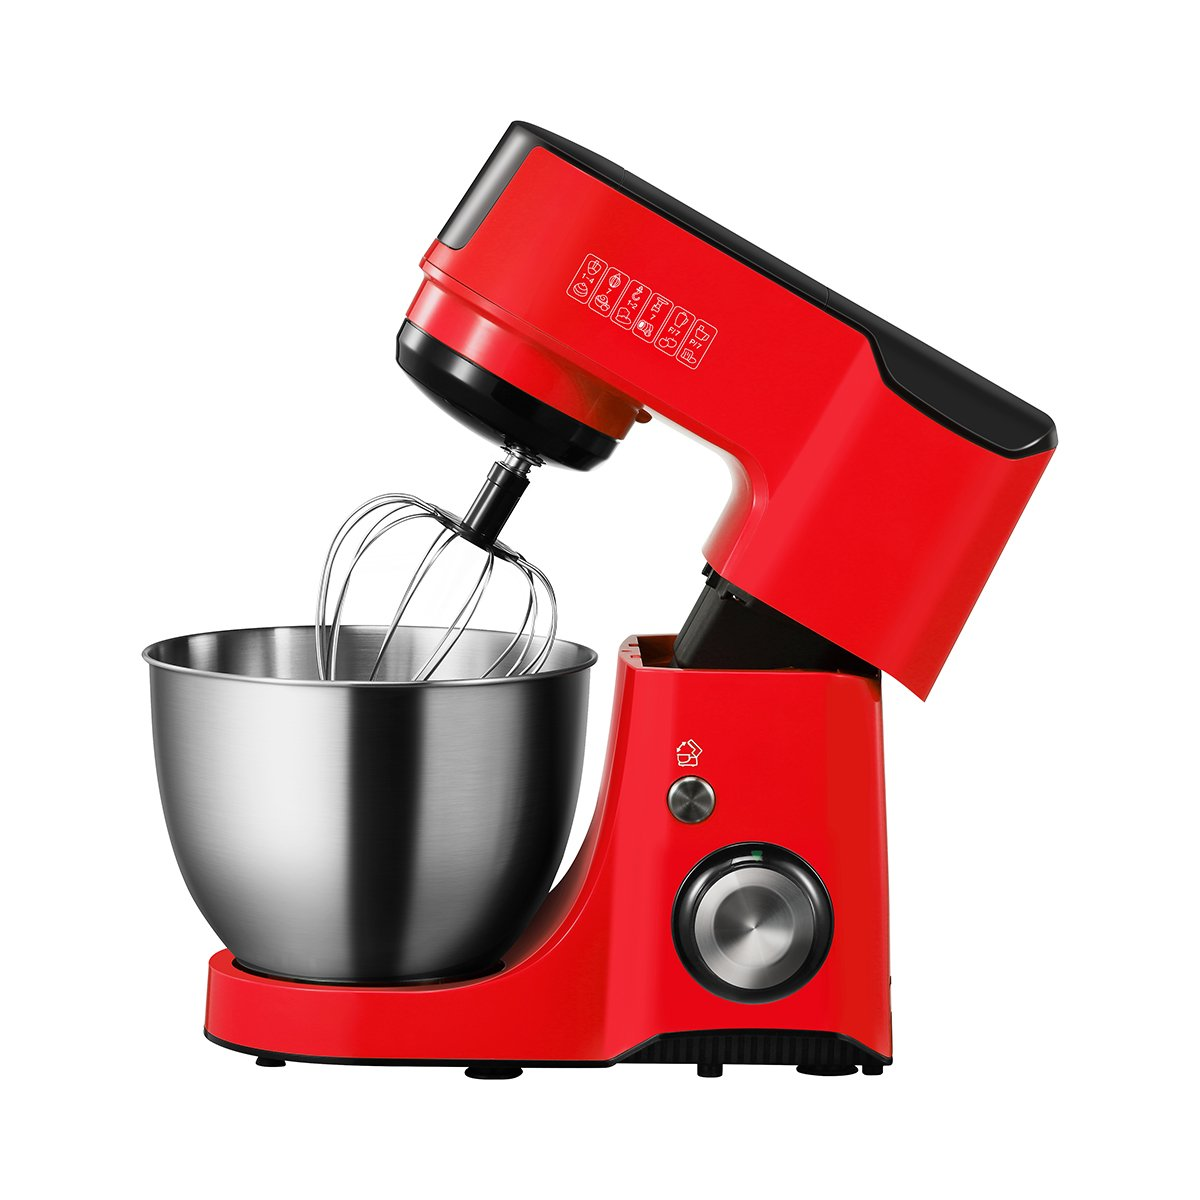 Comfee 4.75Qt ABS Housing 7-in-1 Multi Functions Tilt-Head Stand Mixer with SUS Mixing Bowl. 4 Outlets with 7 Speeds & Pulse Control and 15 Minutes Timer Planetary Mixer